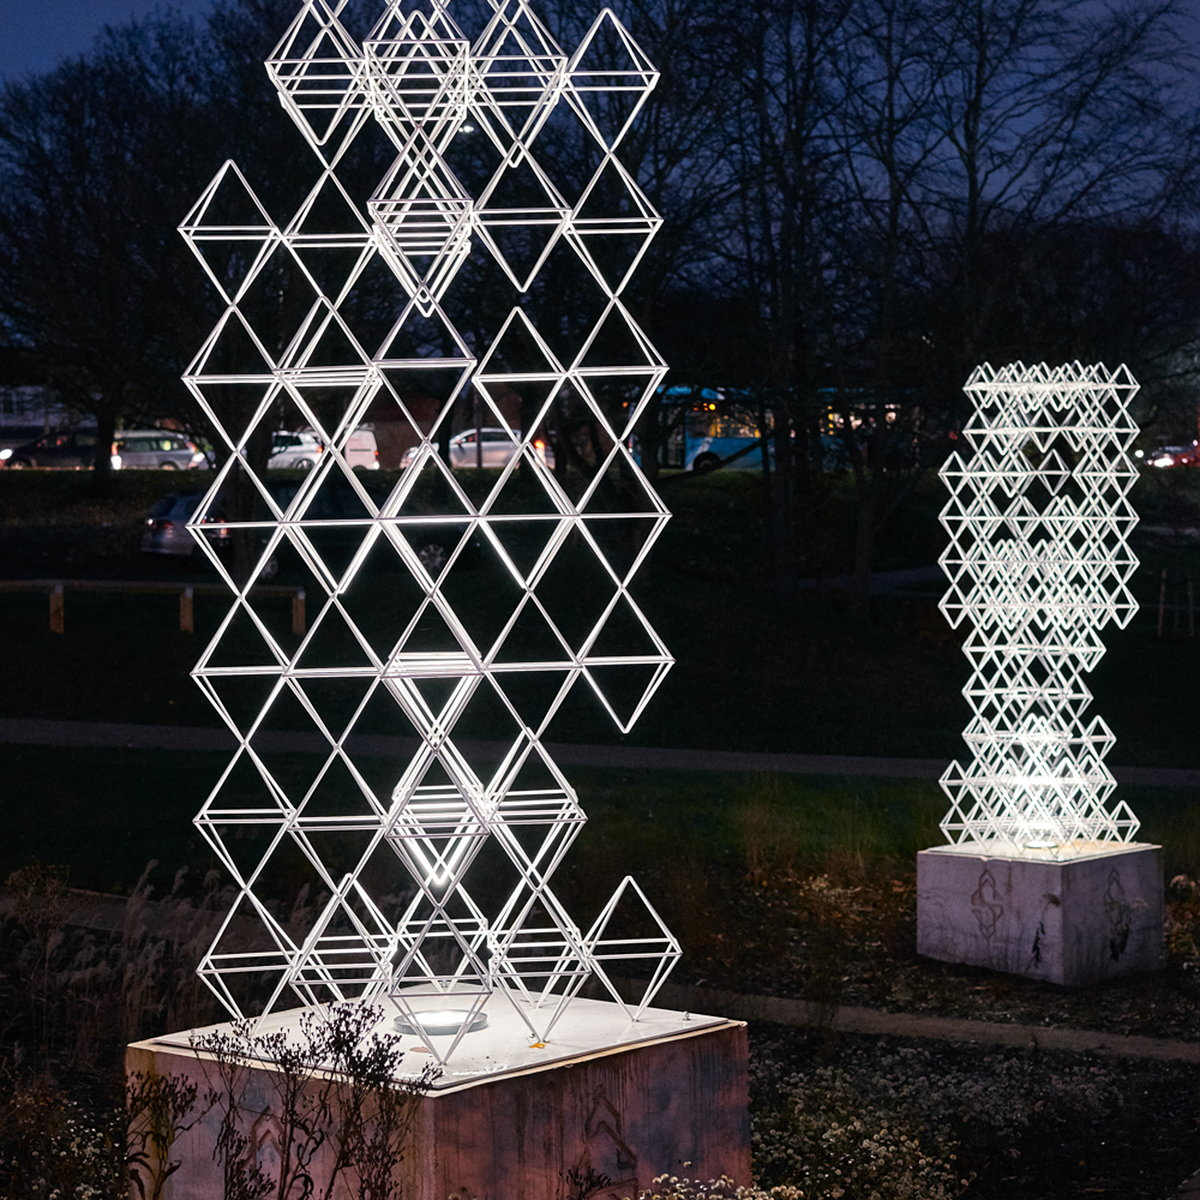 Seven Sisters by Lazerian for Winsford Town Park